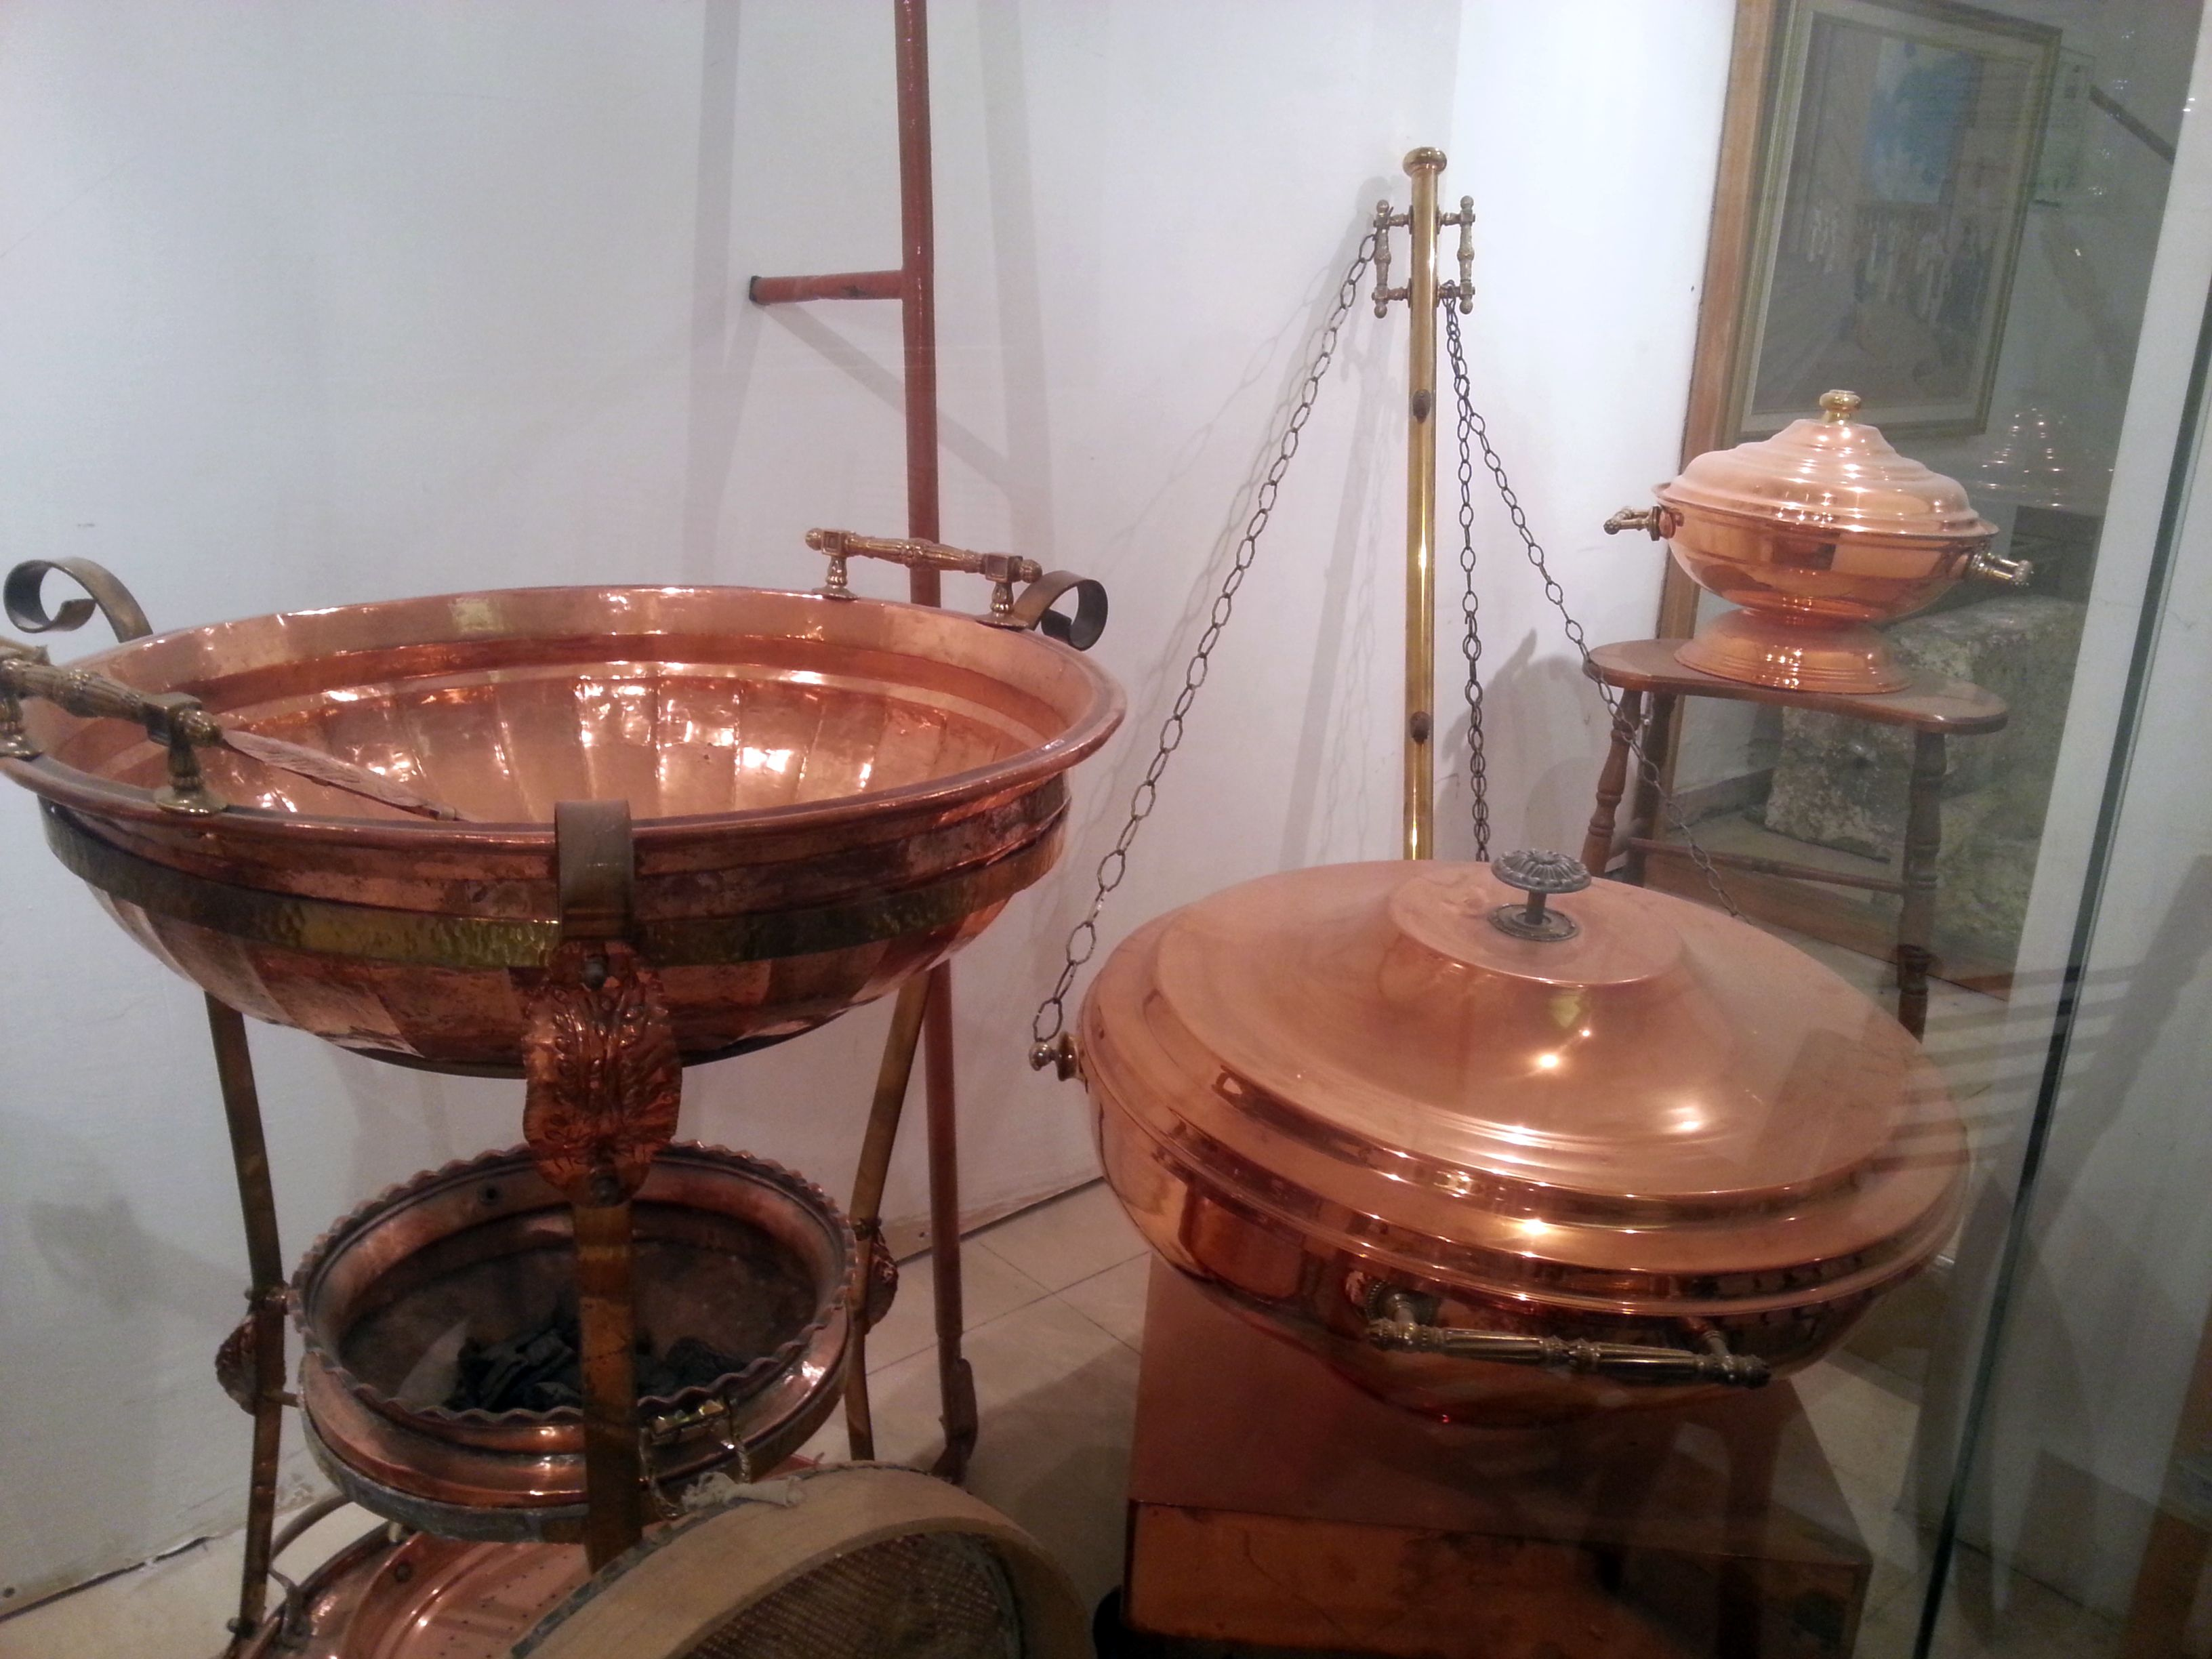 Copper vessels for the Third Temple:  On the left is the Abuv, a three- tiered stand used for roasting the Omer on Passover.  The middle tier contains coal for roasting the barley.  On the far right toward the back is the copper vessel used in preparing the meal offering.